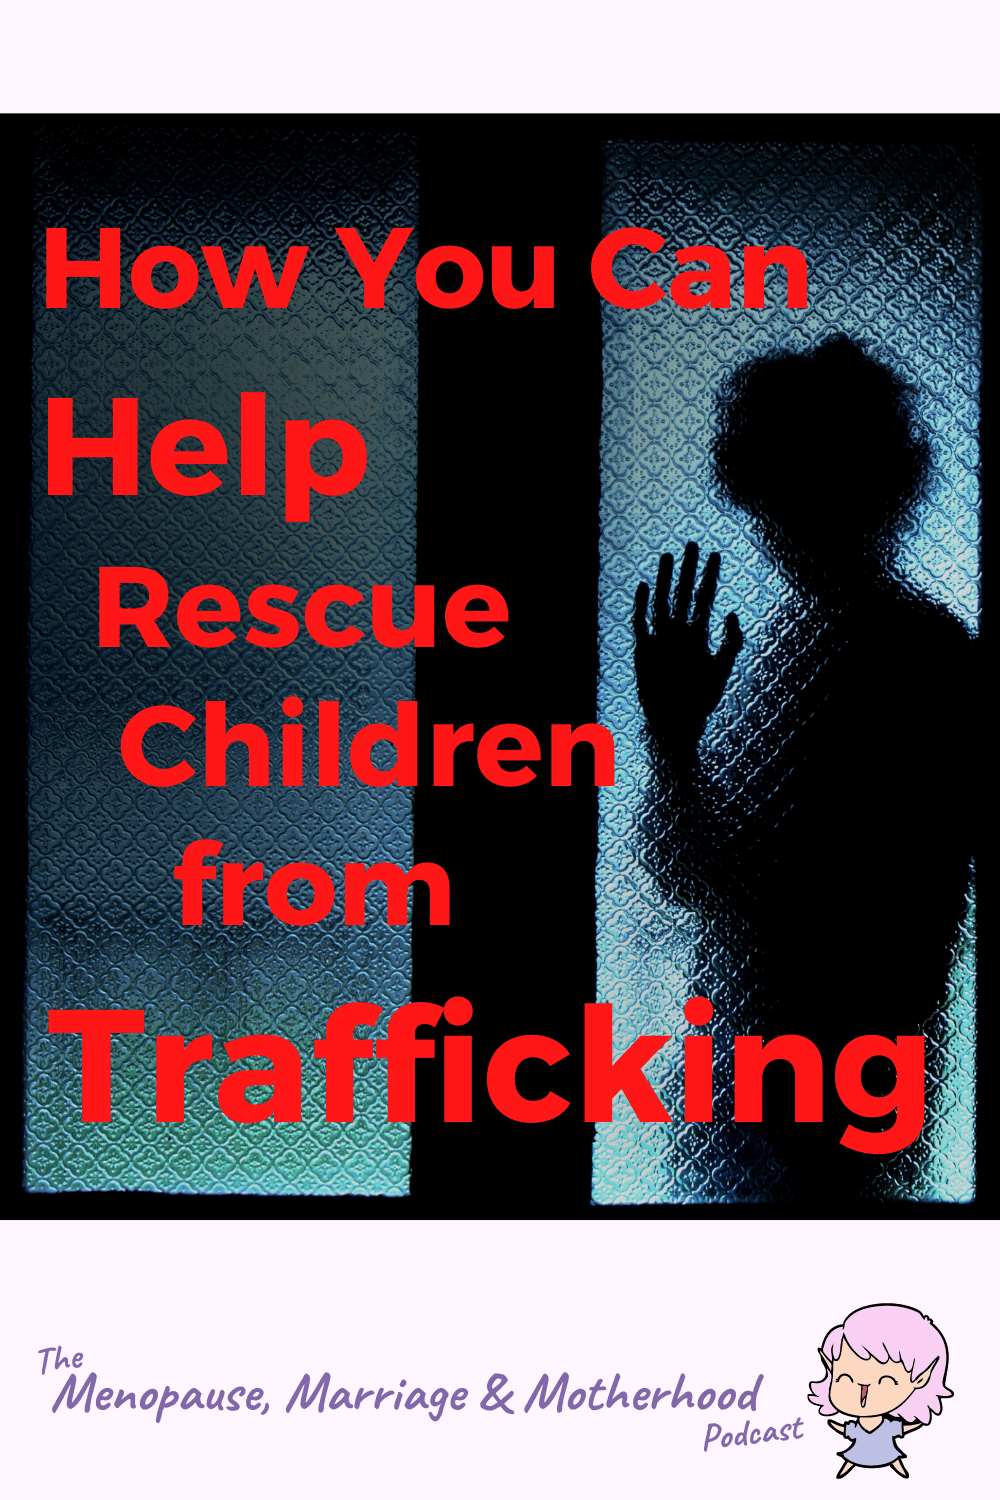 How To Rescue Children From Sex Trafficking